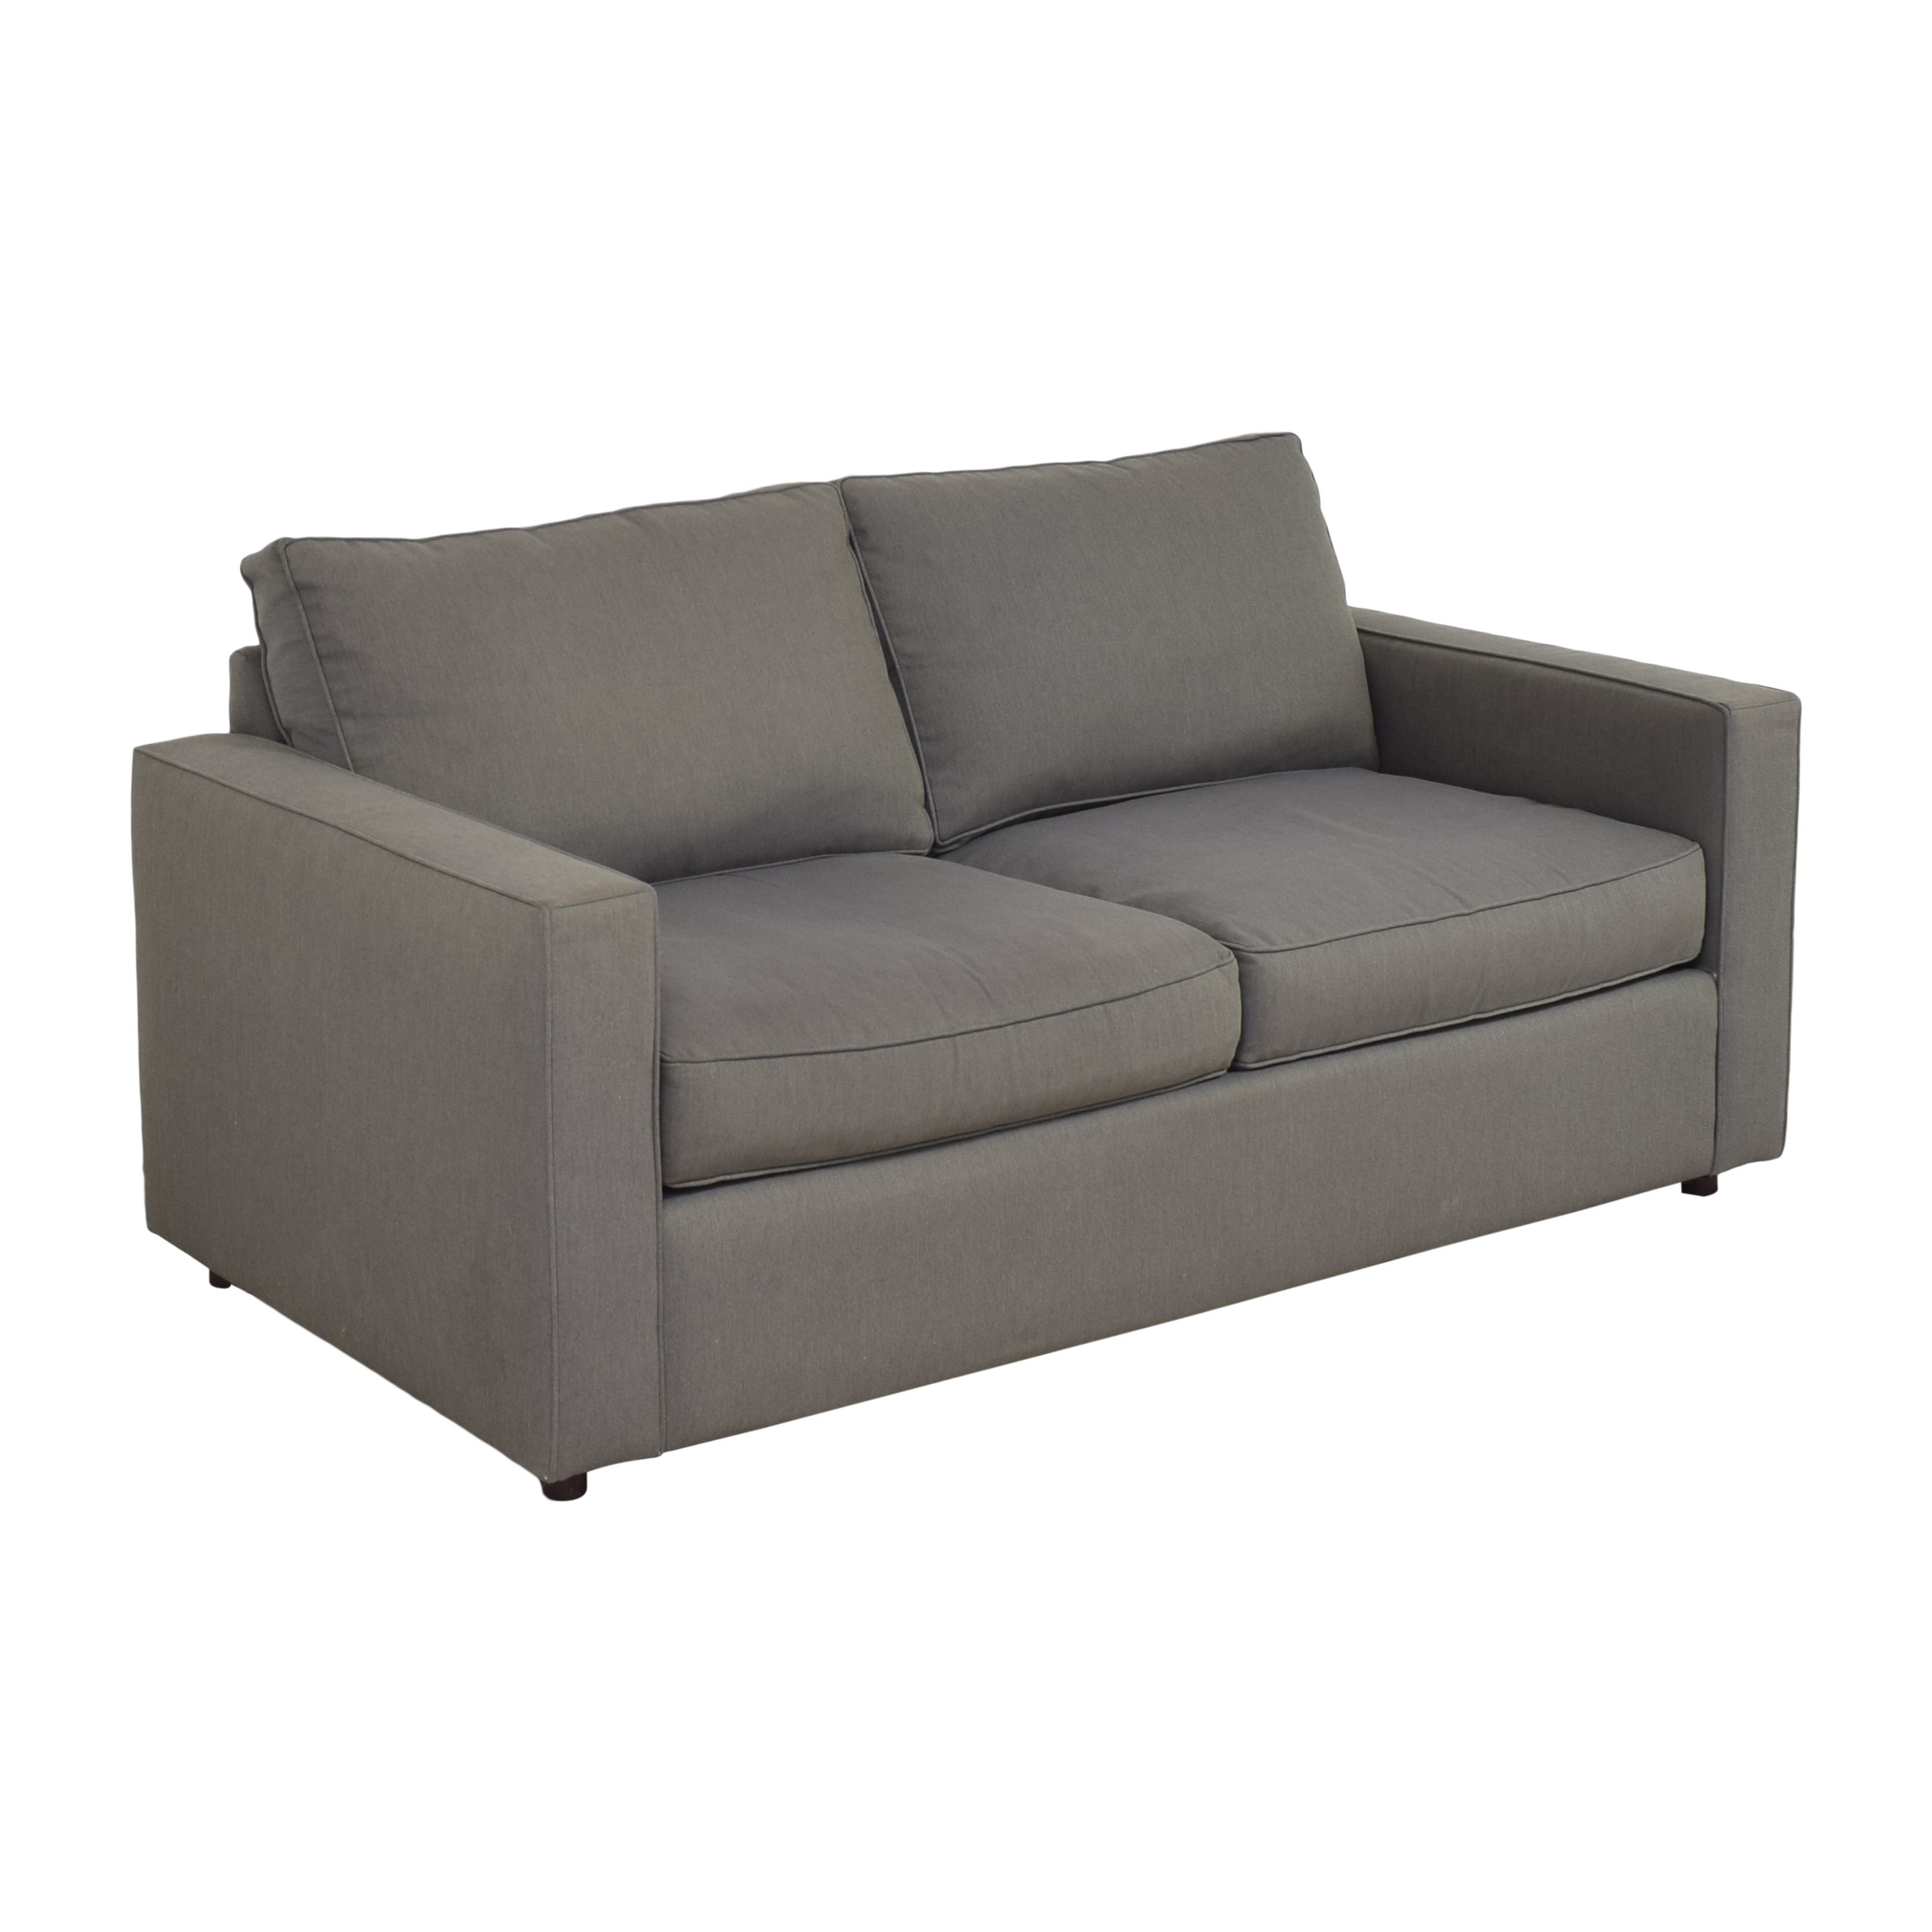 buy Room & Board York Two Cushion Sofa Room & Board